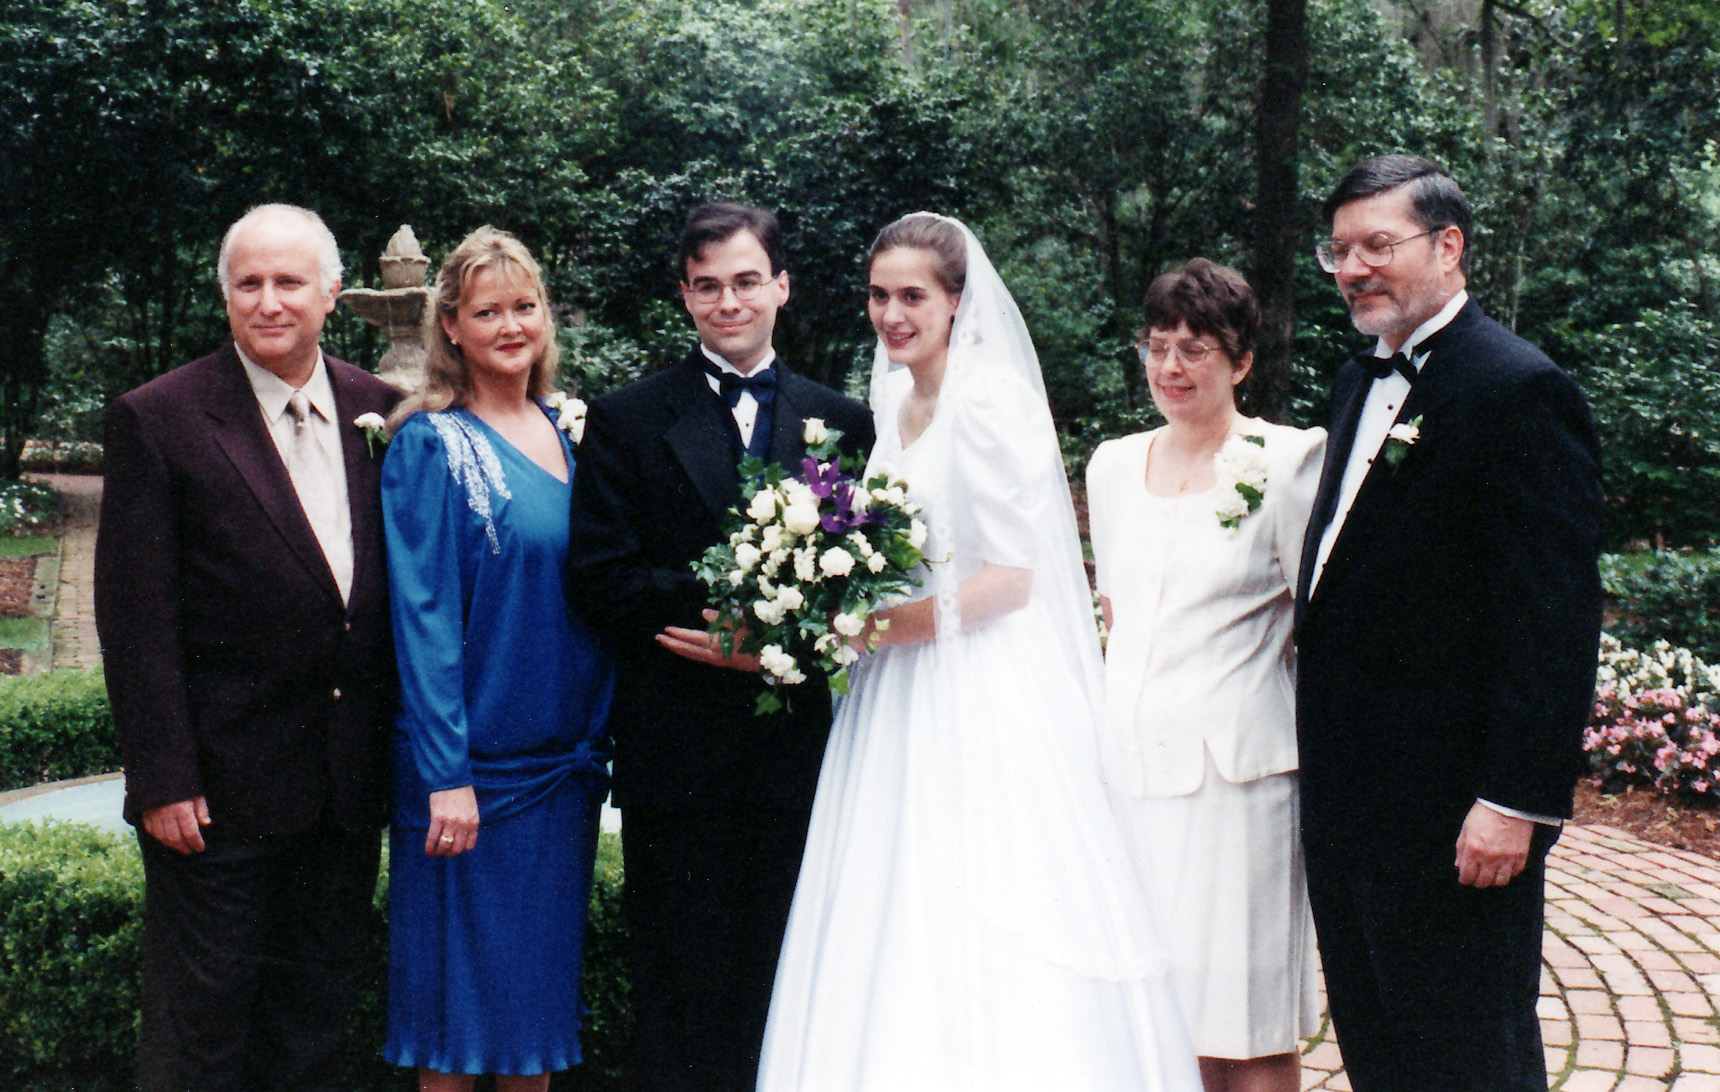 Photo of Toby and Christy's wedding, along with parents.